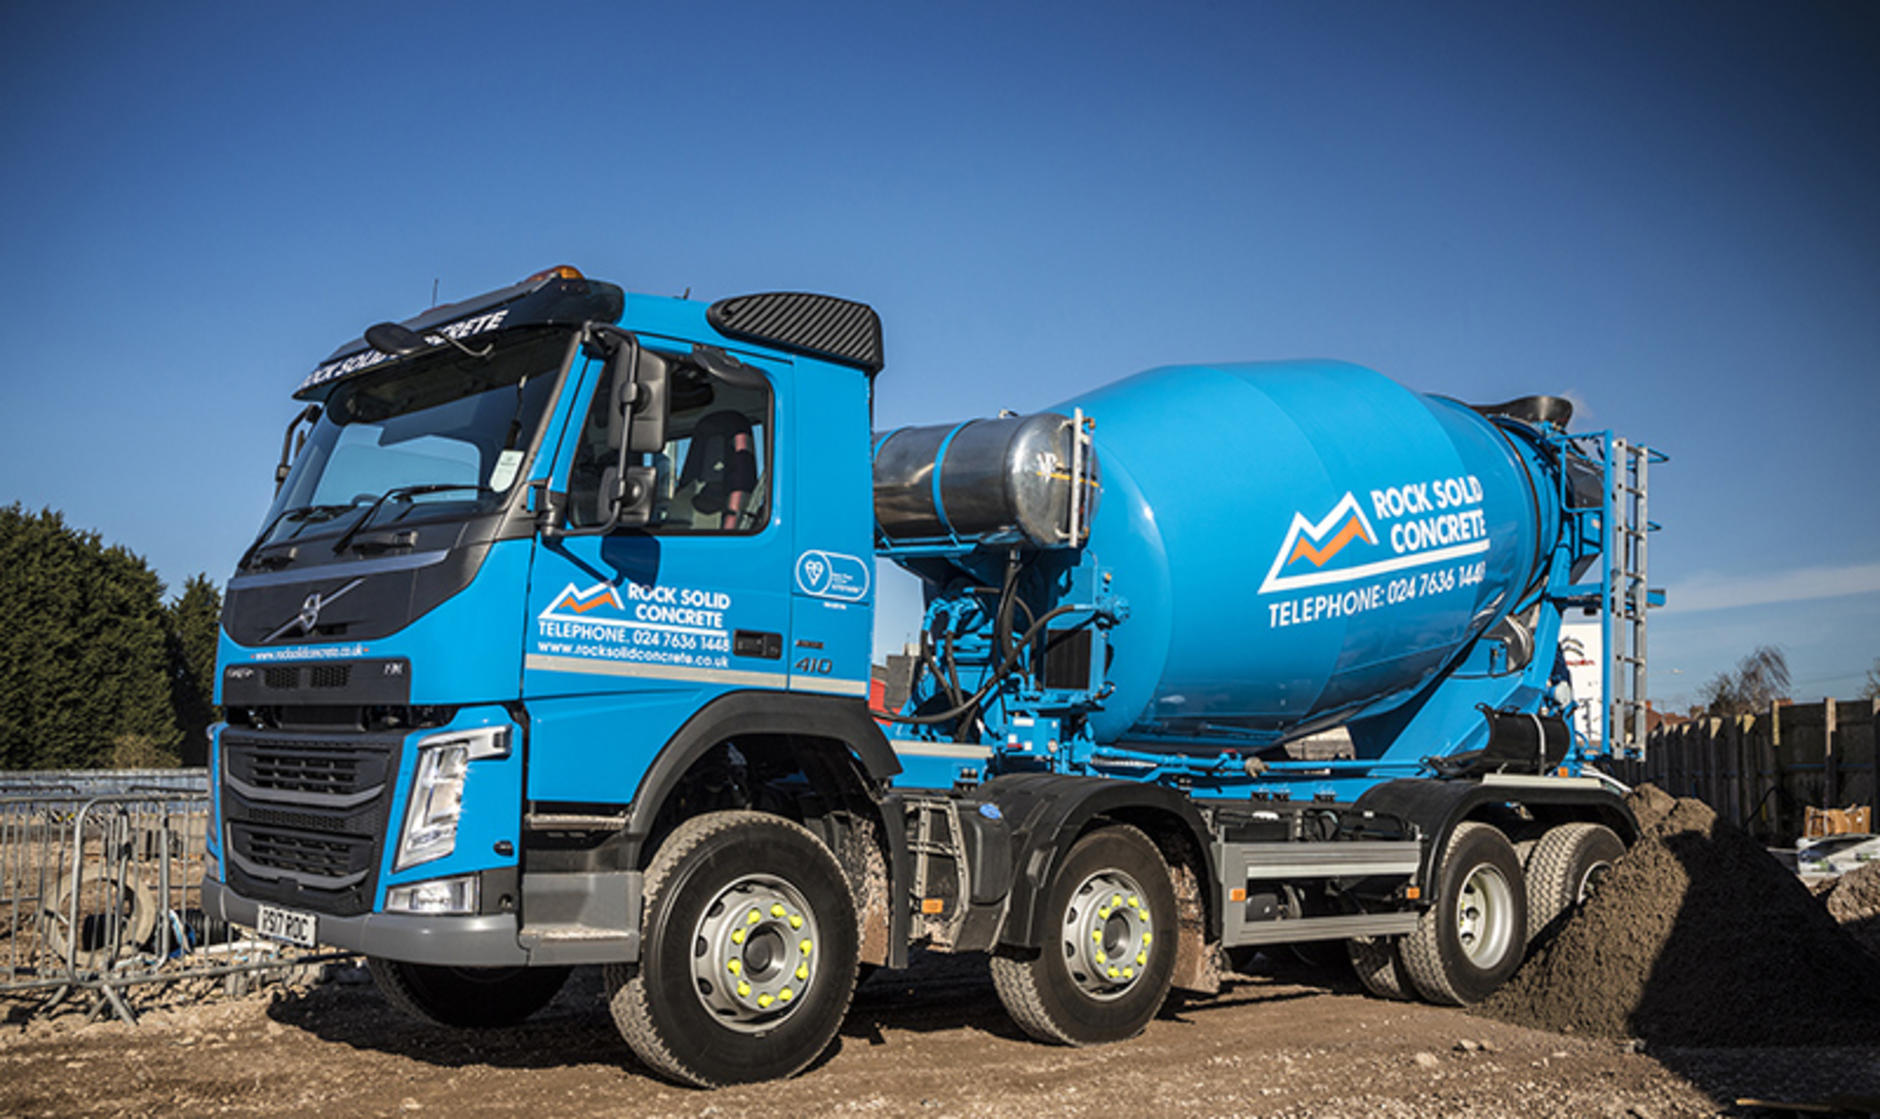 Rock Solid Concrete >> Volvo Fm 8x4 With Remote Control Mixer For Rock Solid Mixer Hire